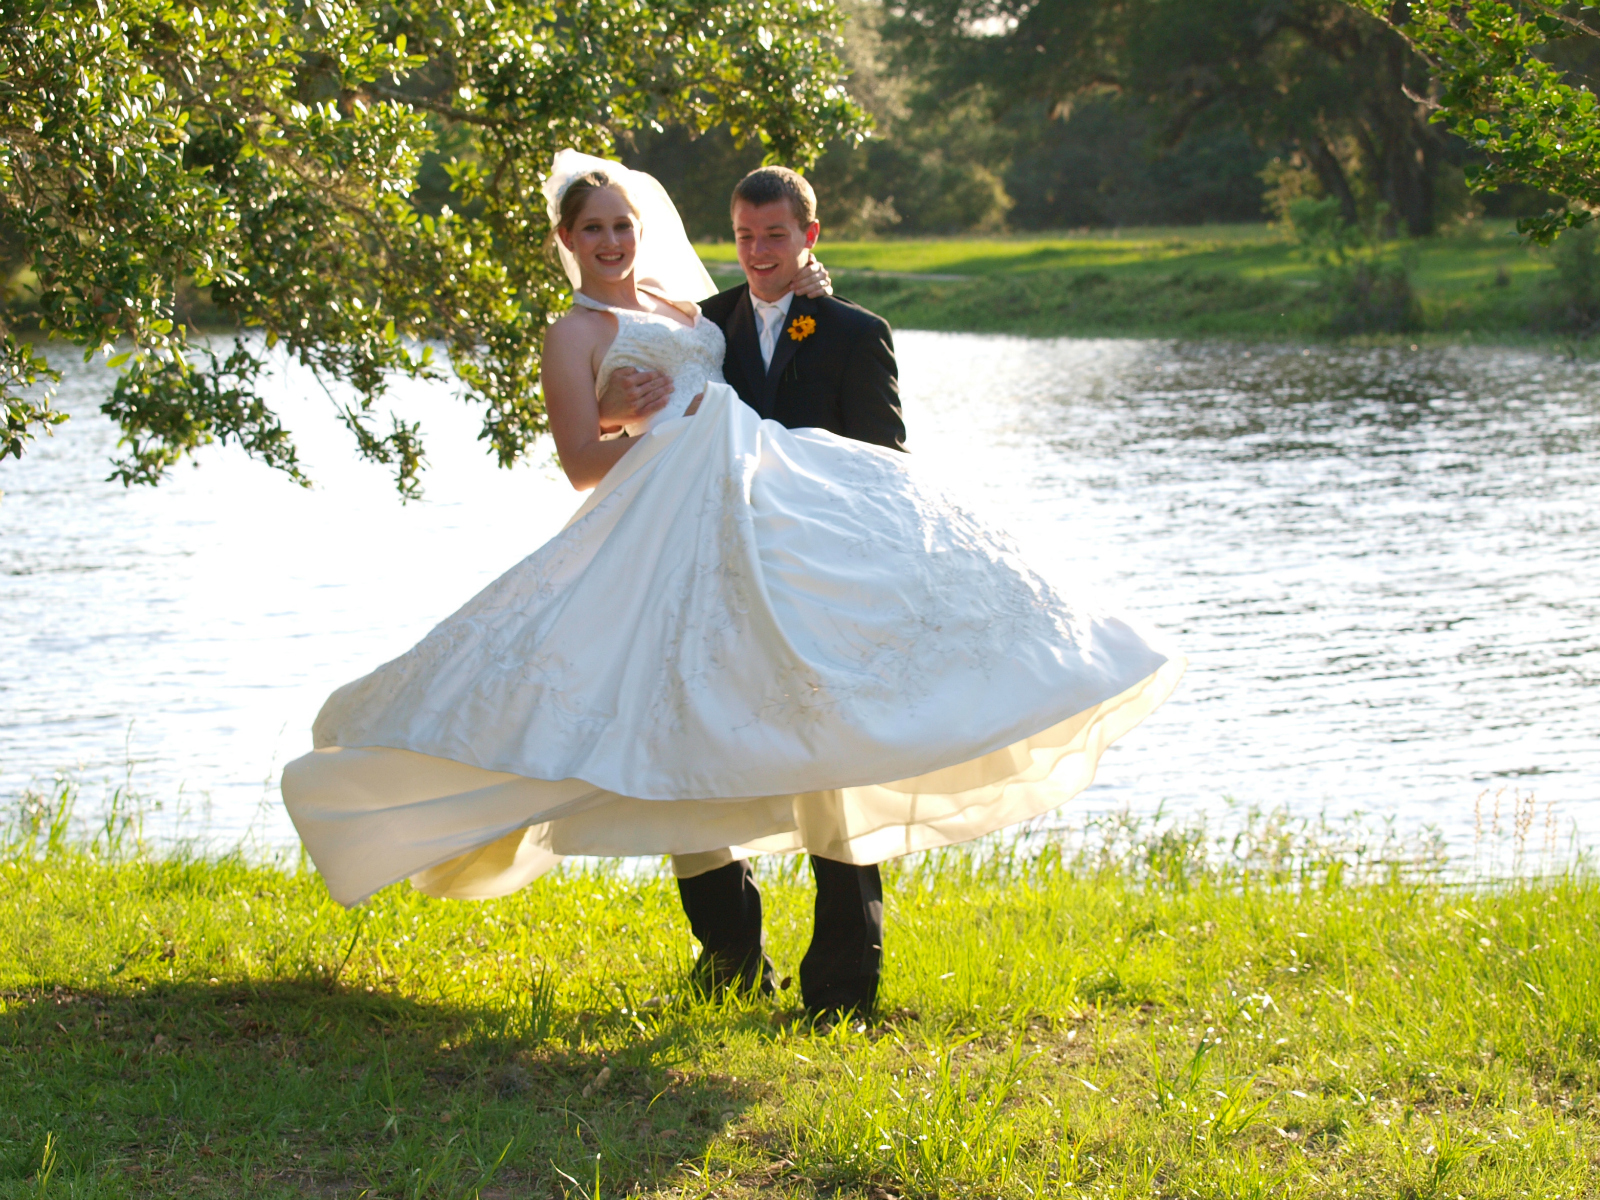 Happy bride and groom at their rustic Texas wedding